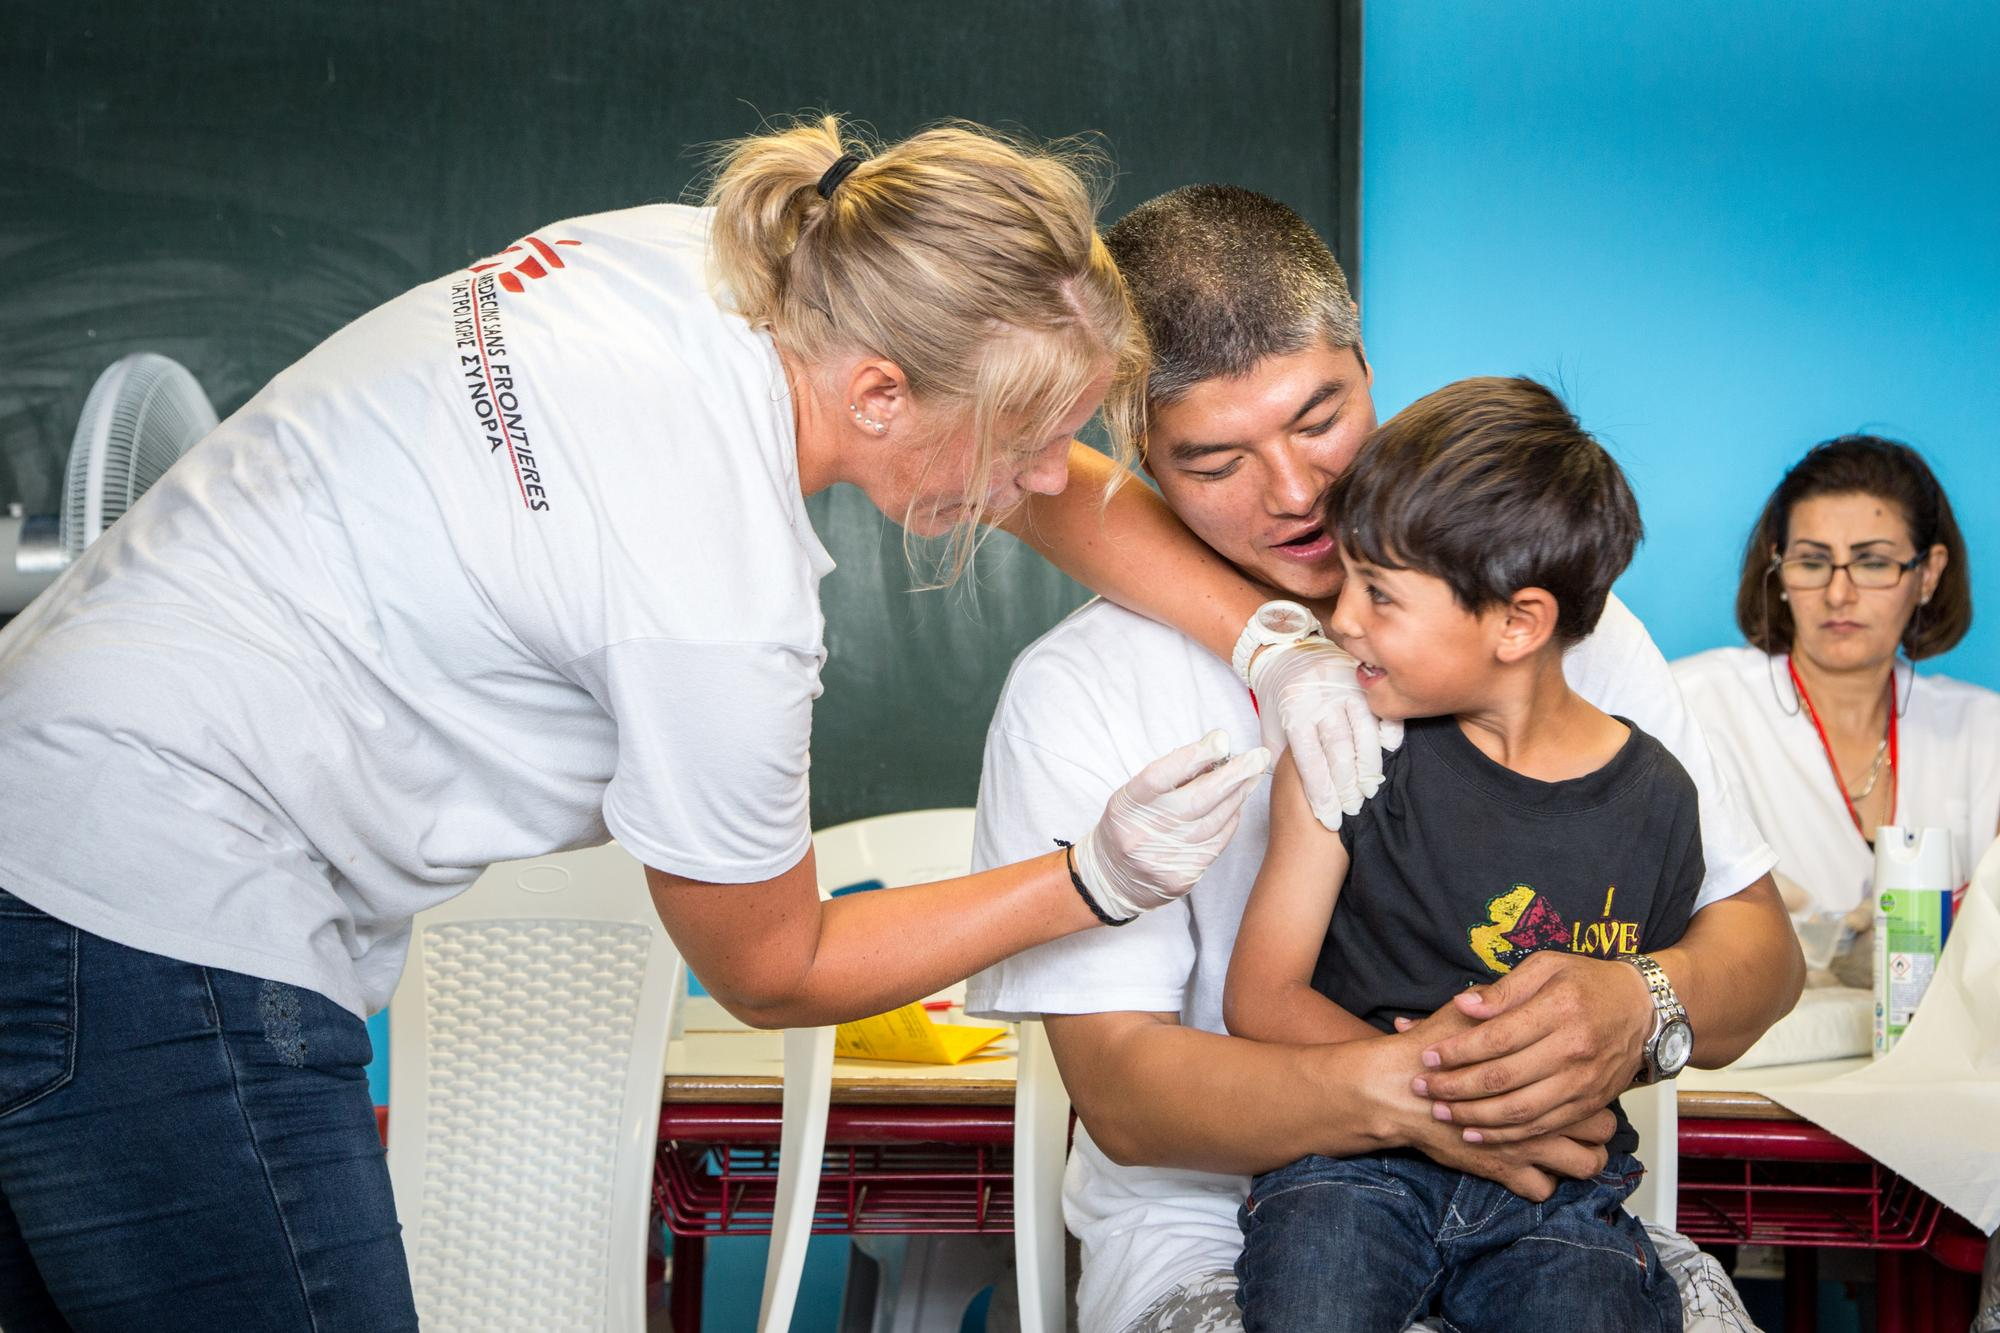 A young boy receiving vaccine